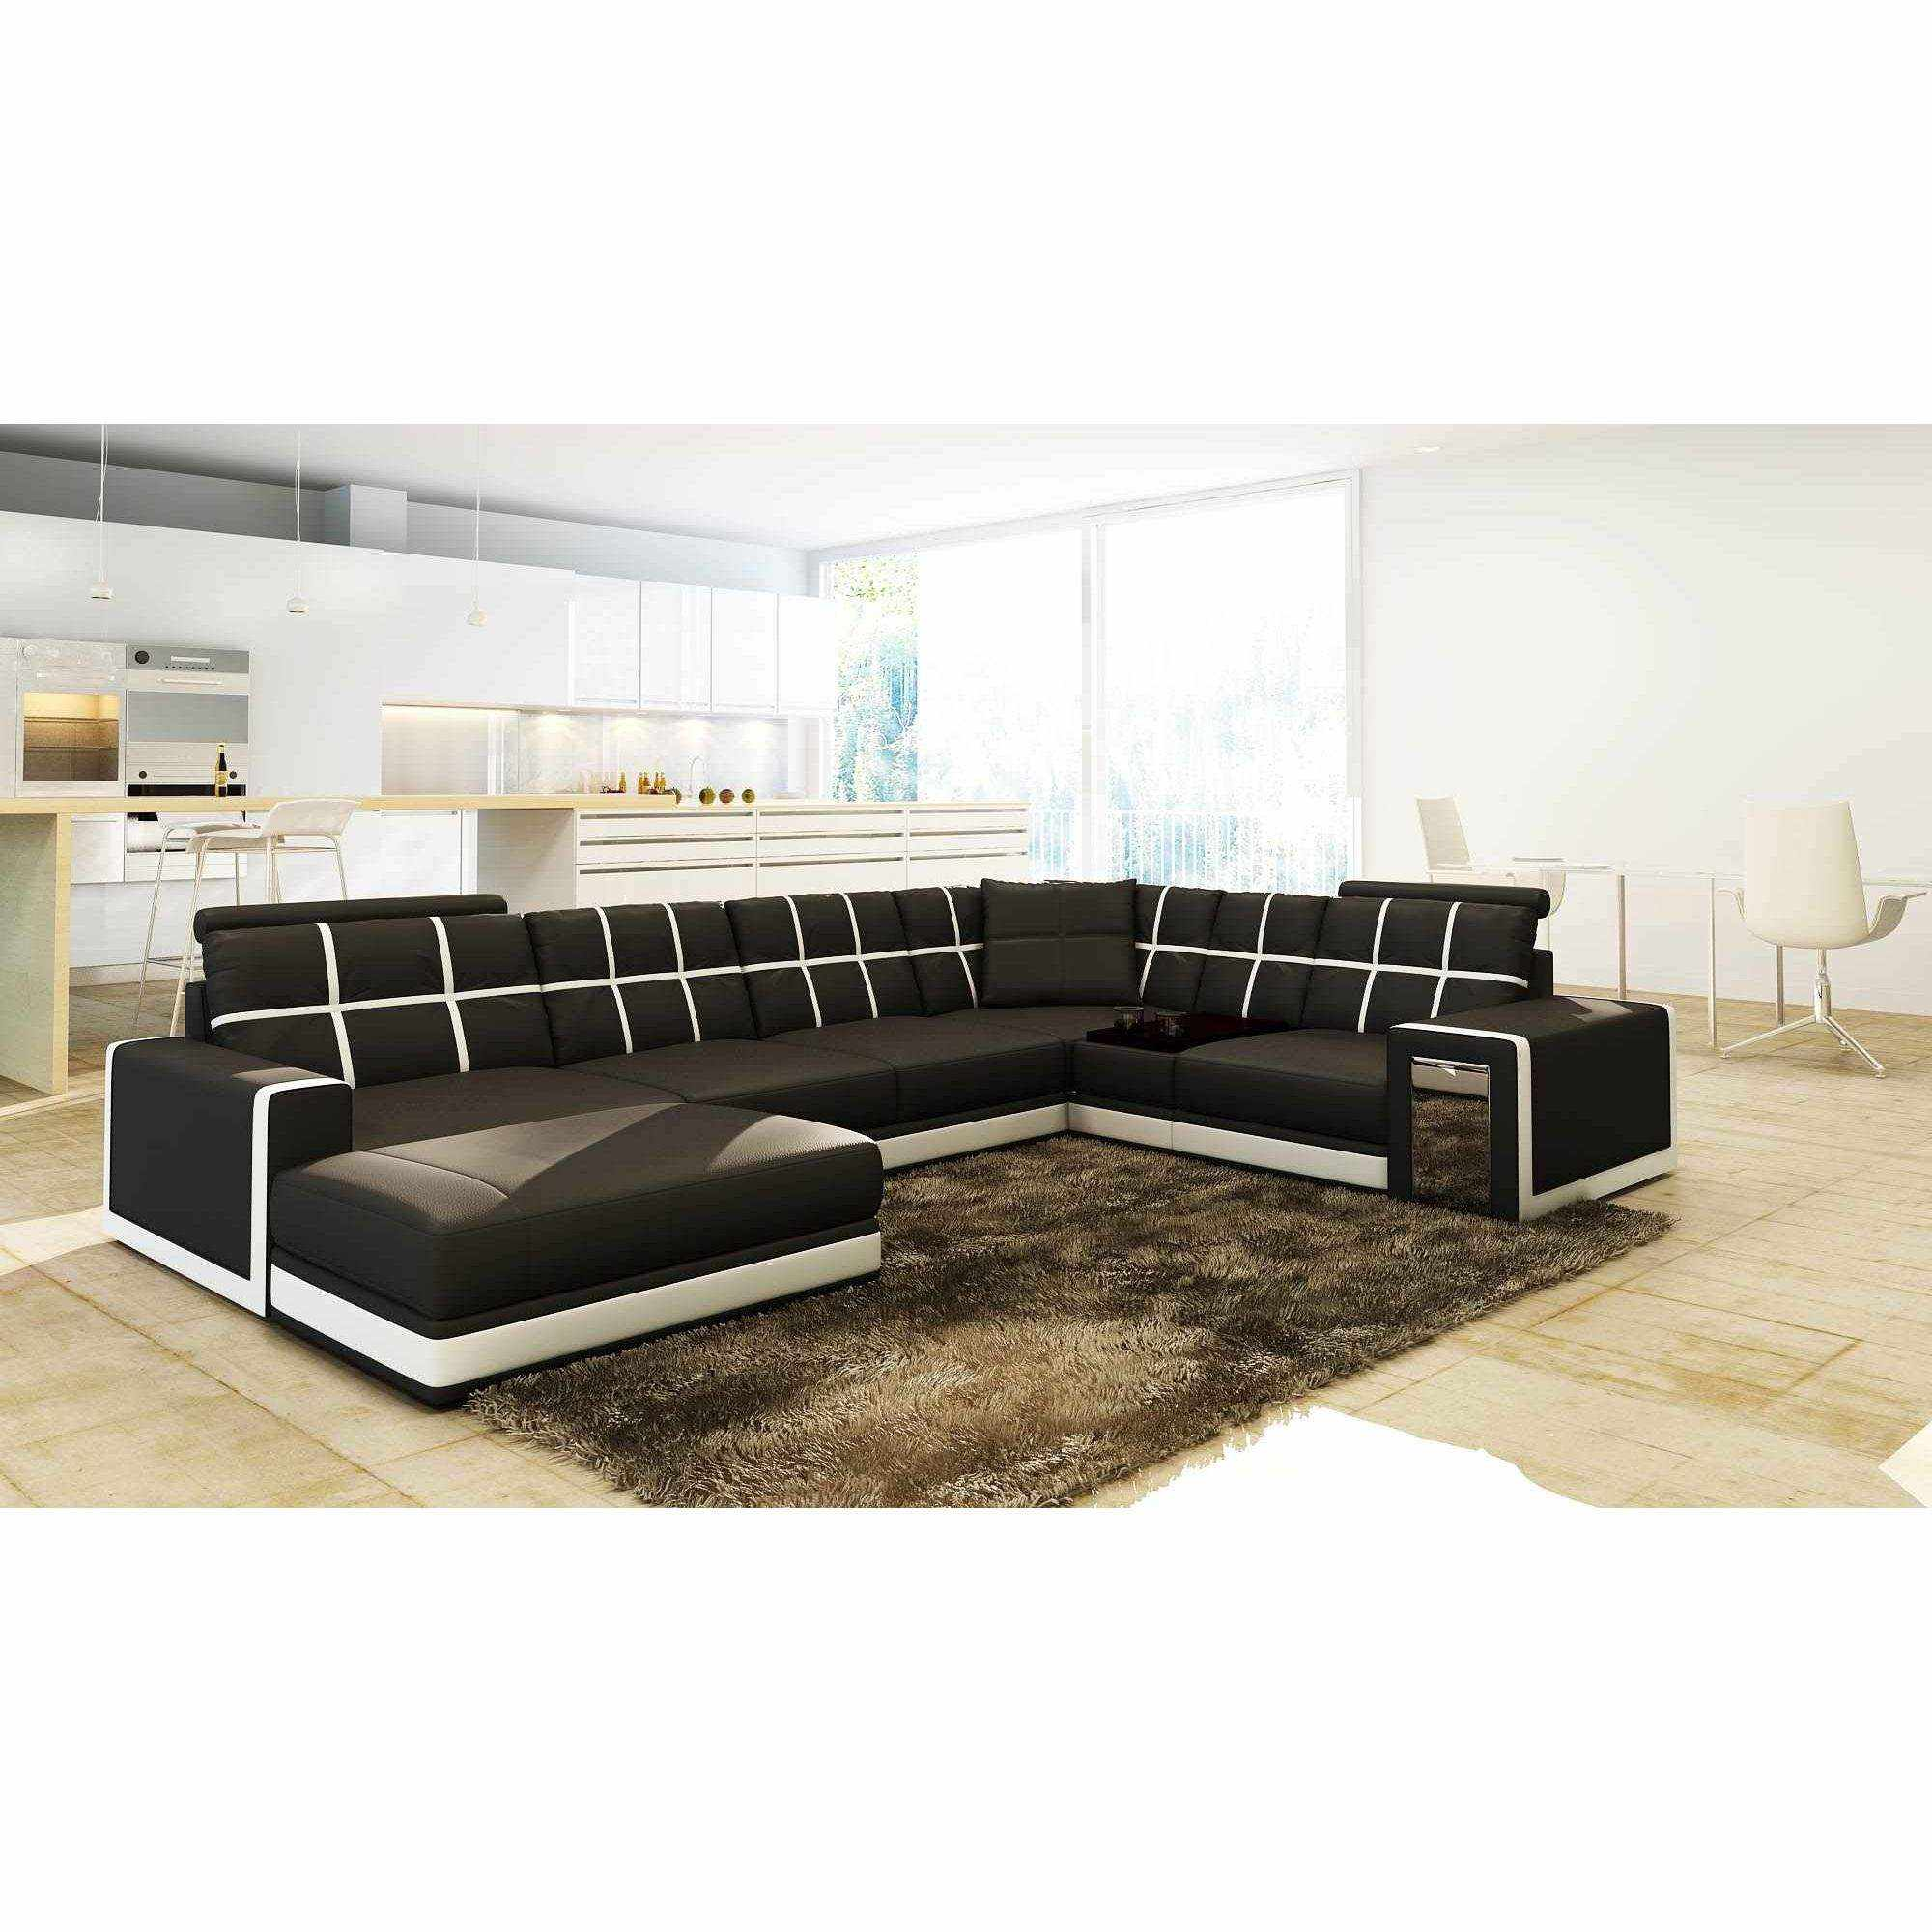 deco in paris canape d angle panoramique cuir noir et blanc design electra electra noir et blanc. Black Bedroom Furniture Sets. Home Design Ideas